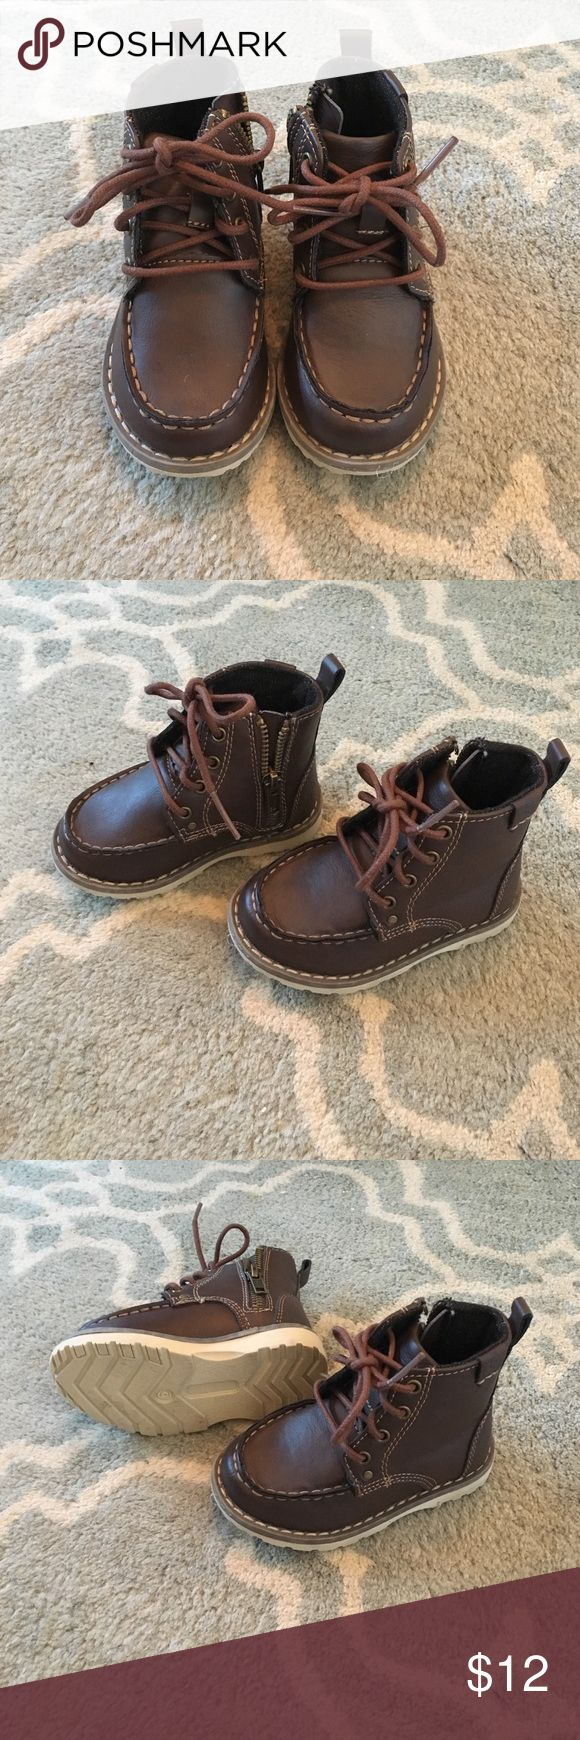 Toddler Brown Boots Like New, Faux Leather Toddler Boys Hiking Boots with Laces and Side Zip for Easy On/Off Shoes